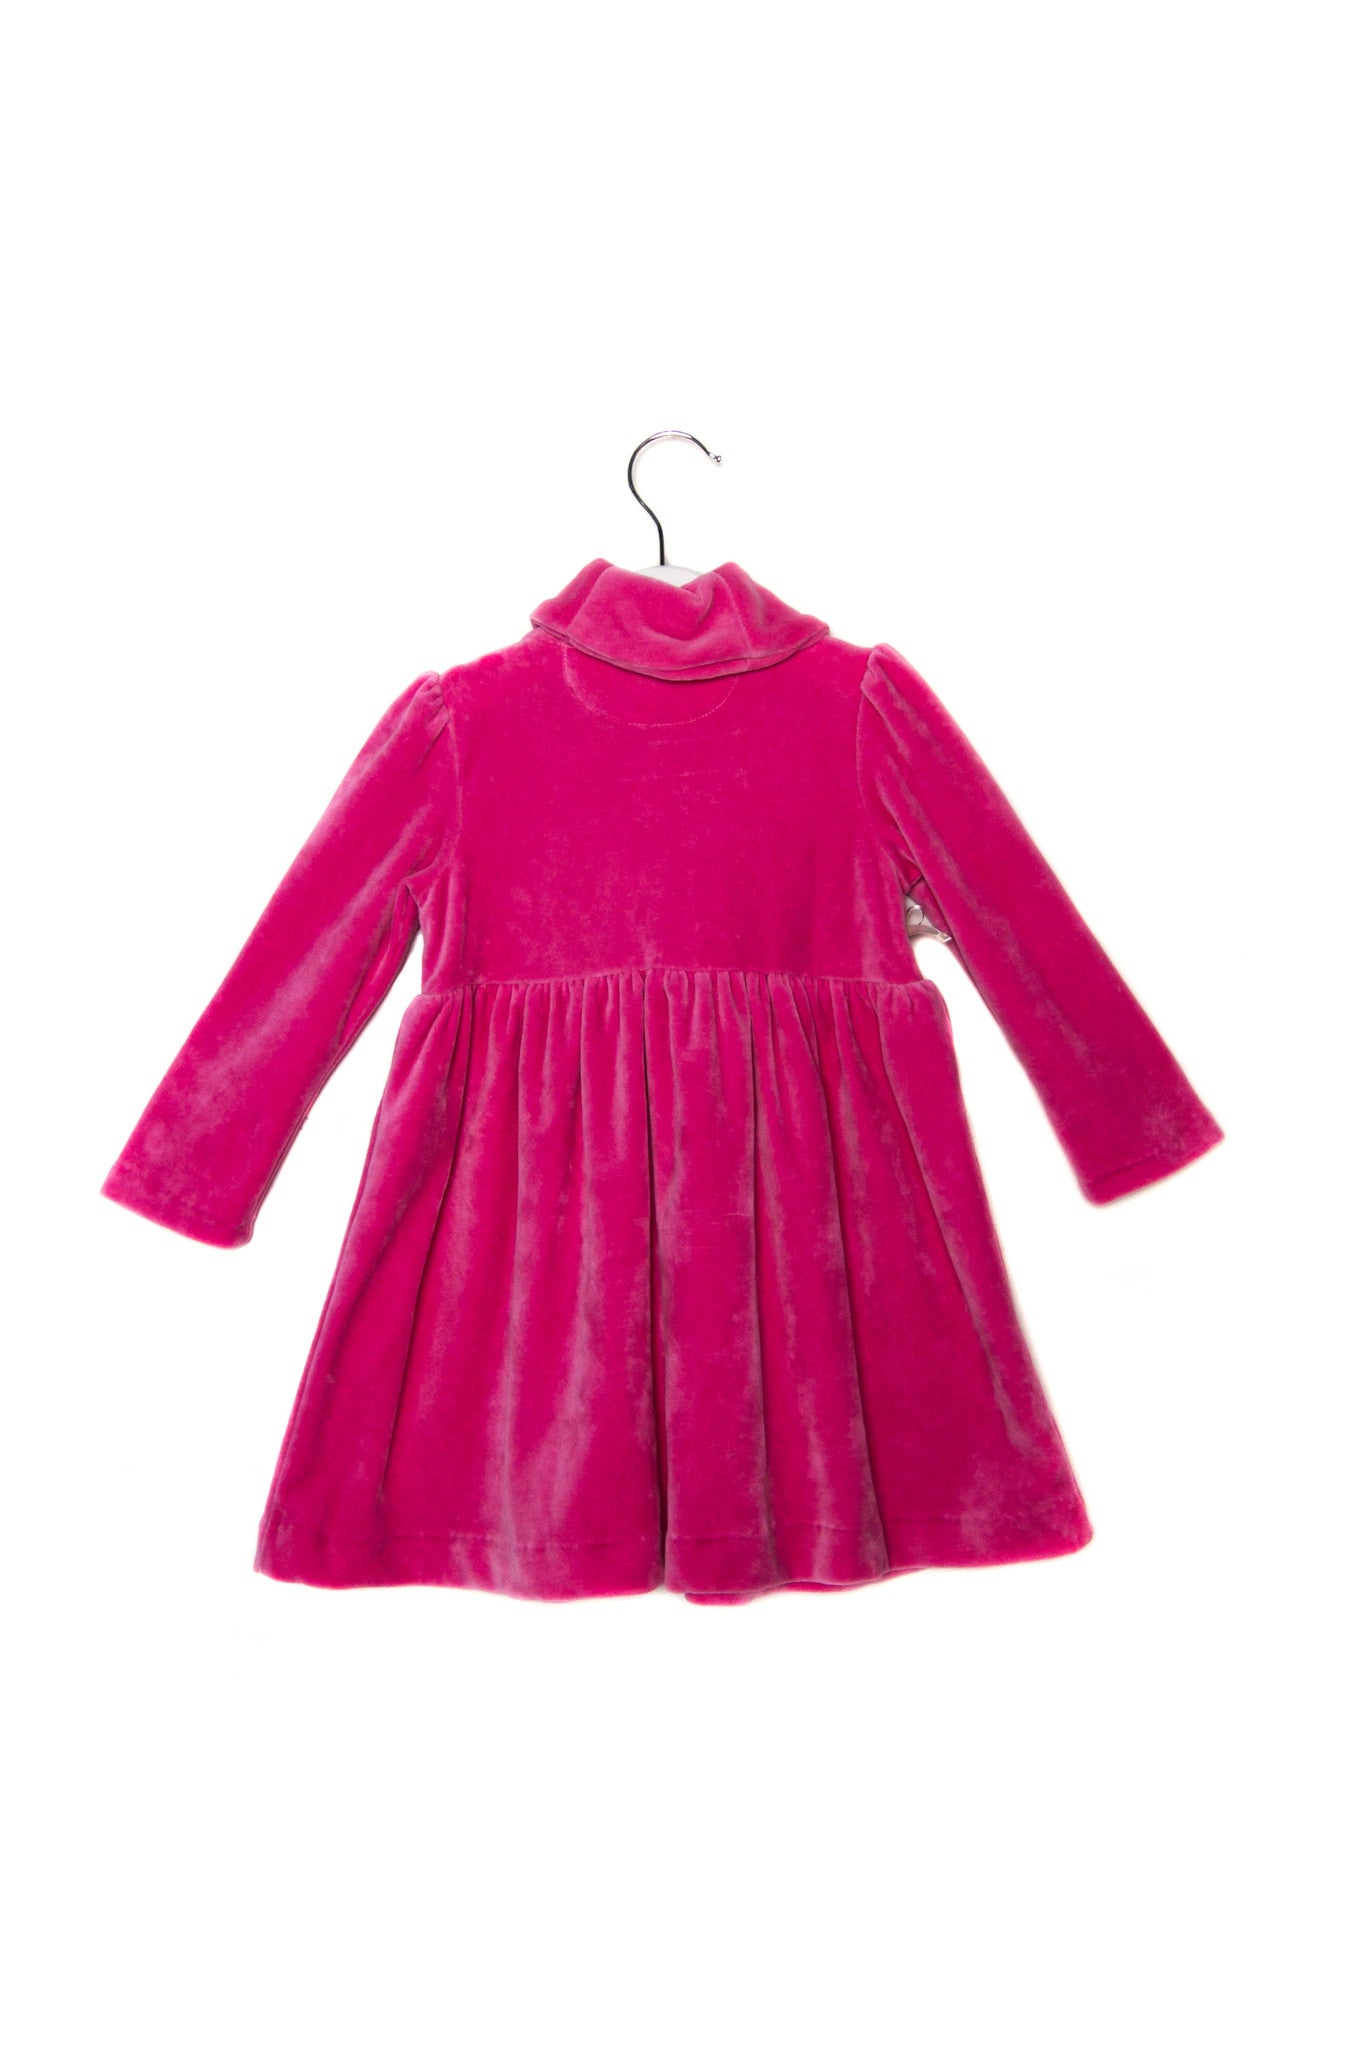 10002237 Ralph Lauren Baby~Dress and Bloomer 18M at Retykle